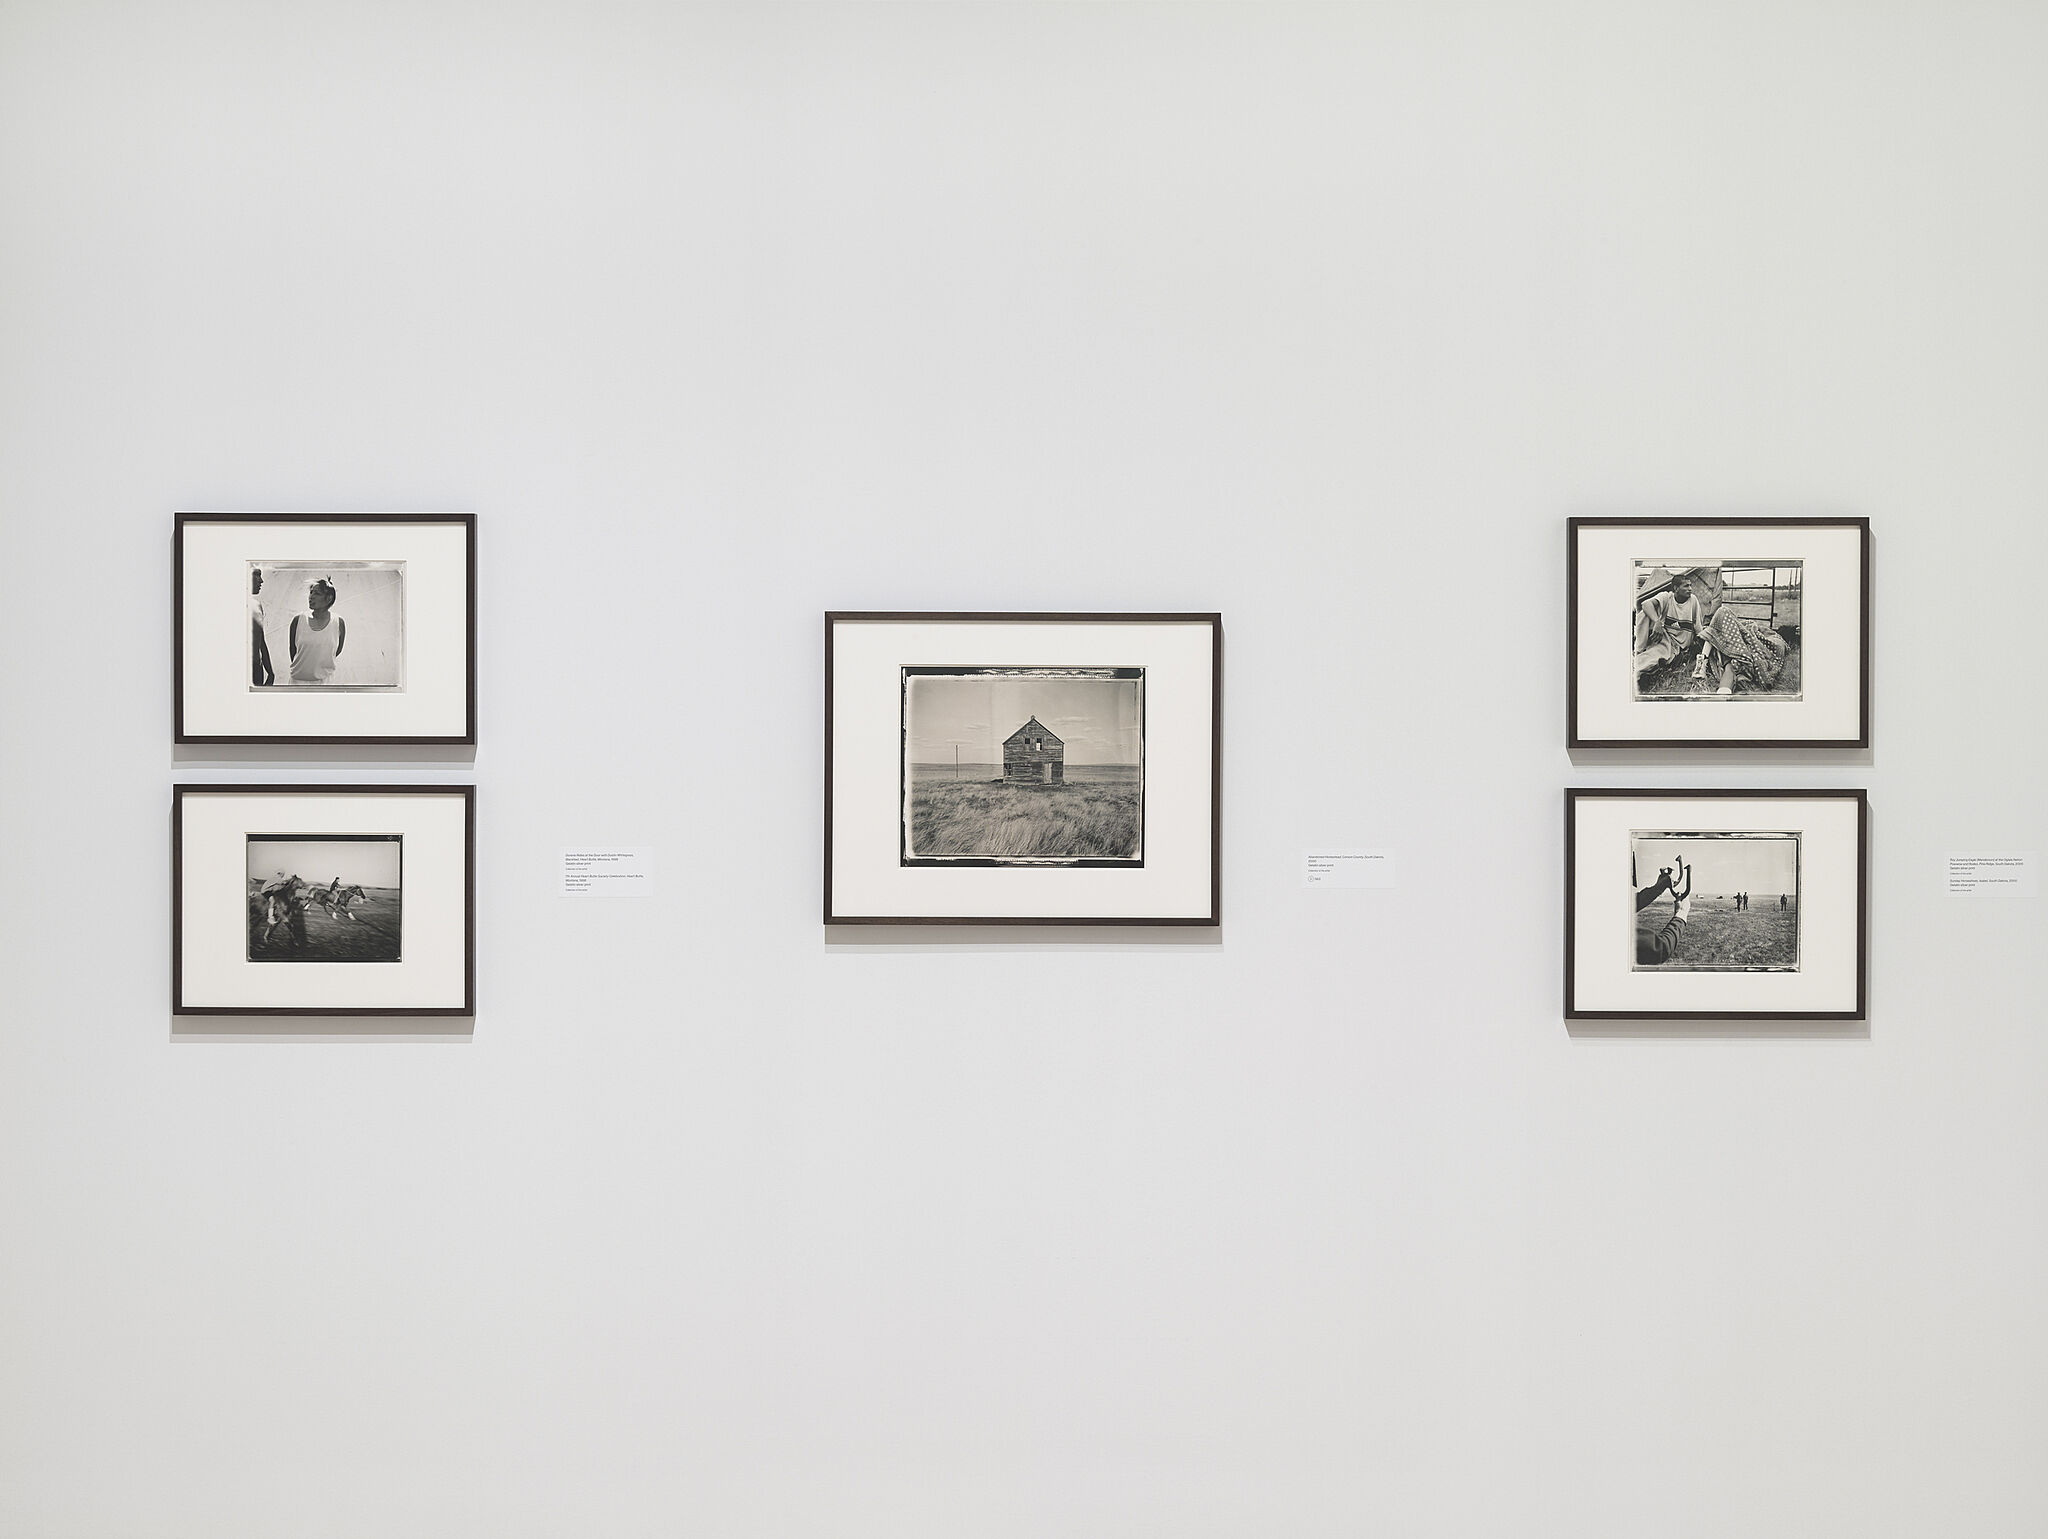 A series of five photos on the wall of the works of Danny Lyon.